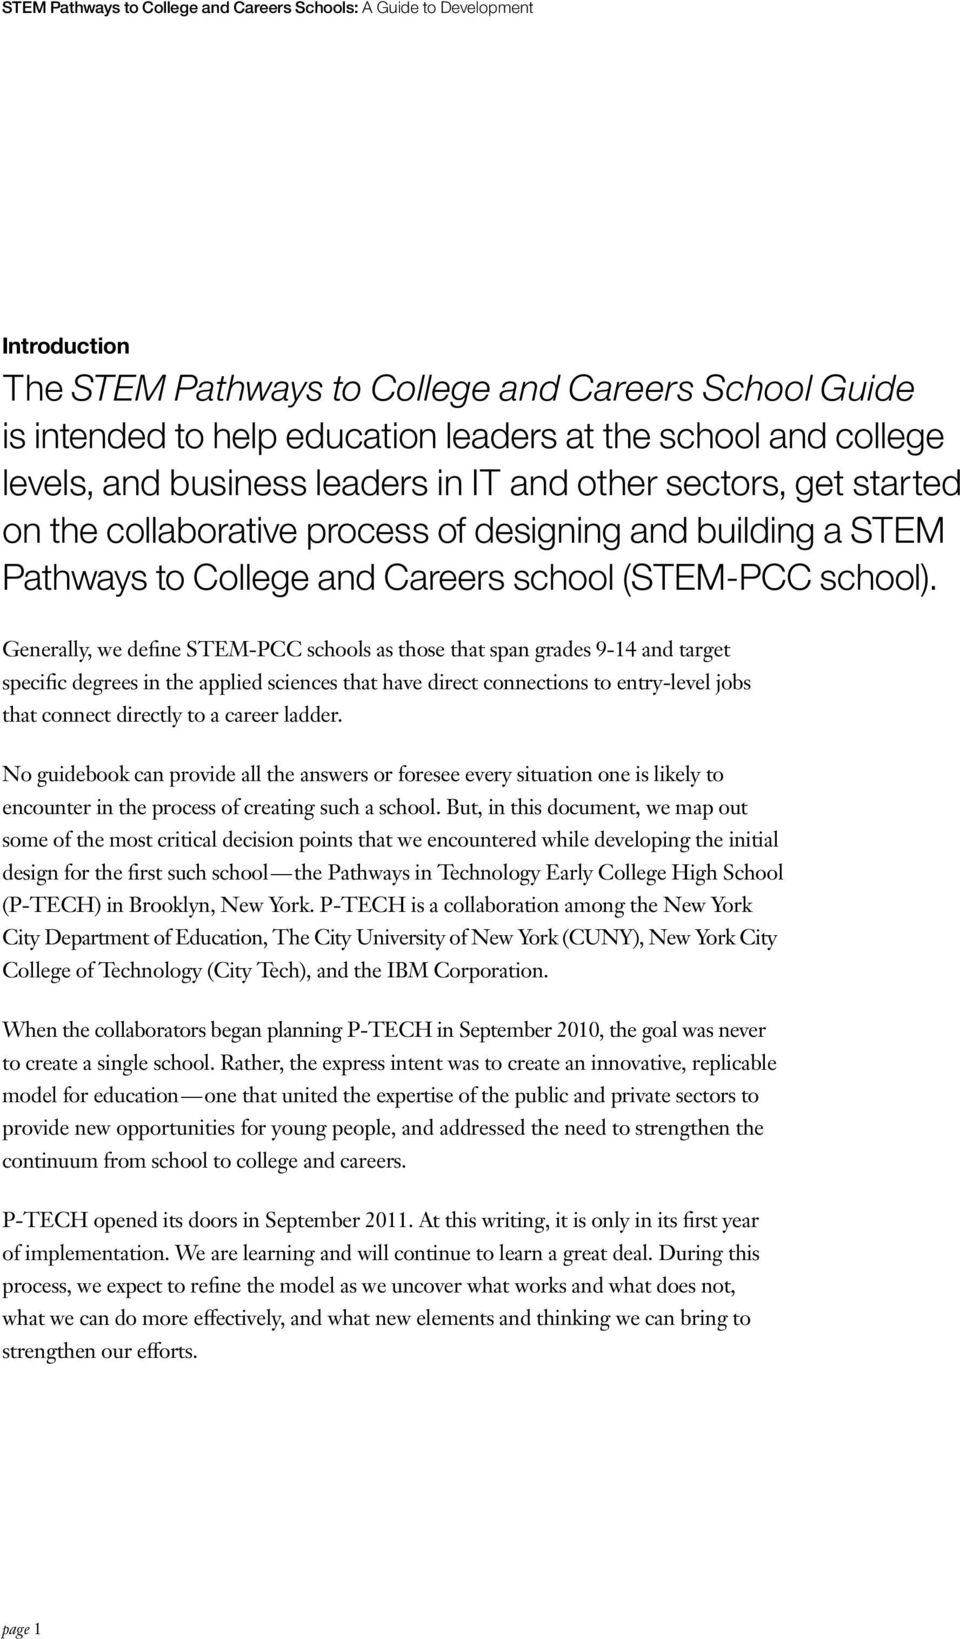 Generally, we define STEM-PCC schools as those that span grades 9-14 and target specific degrees in the applied sciences that have direct connections to entry-level jobs that connect directly to a